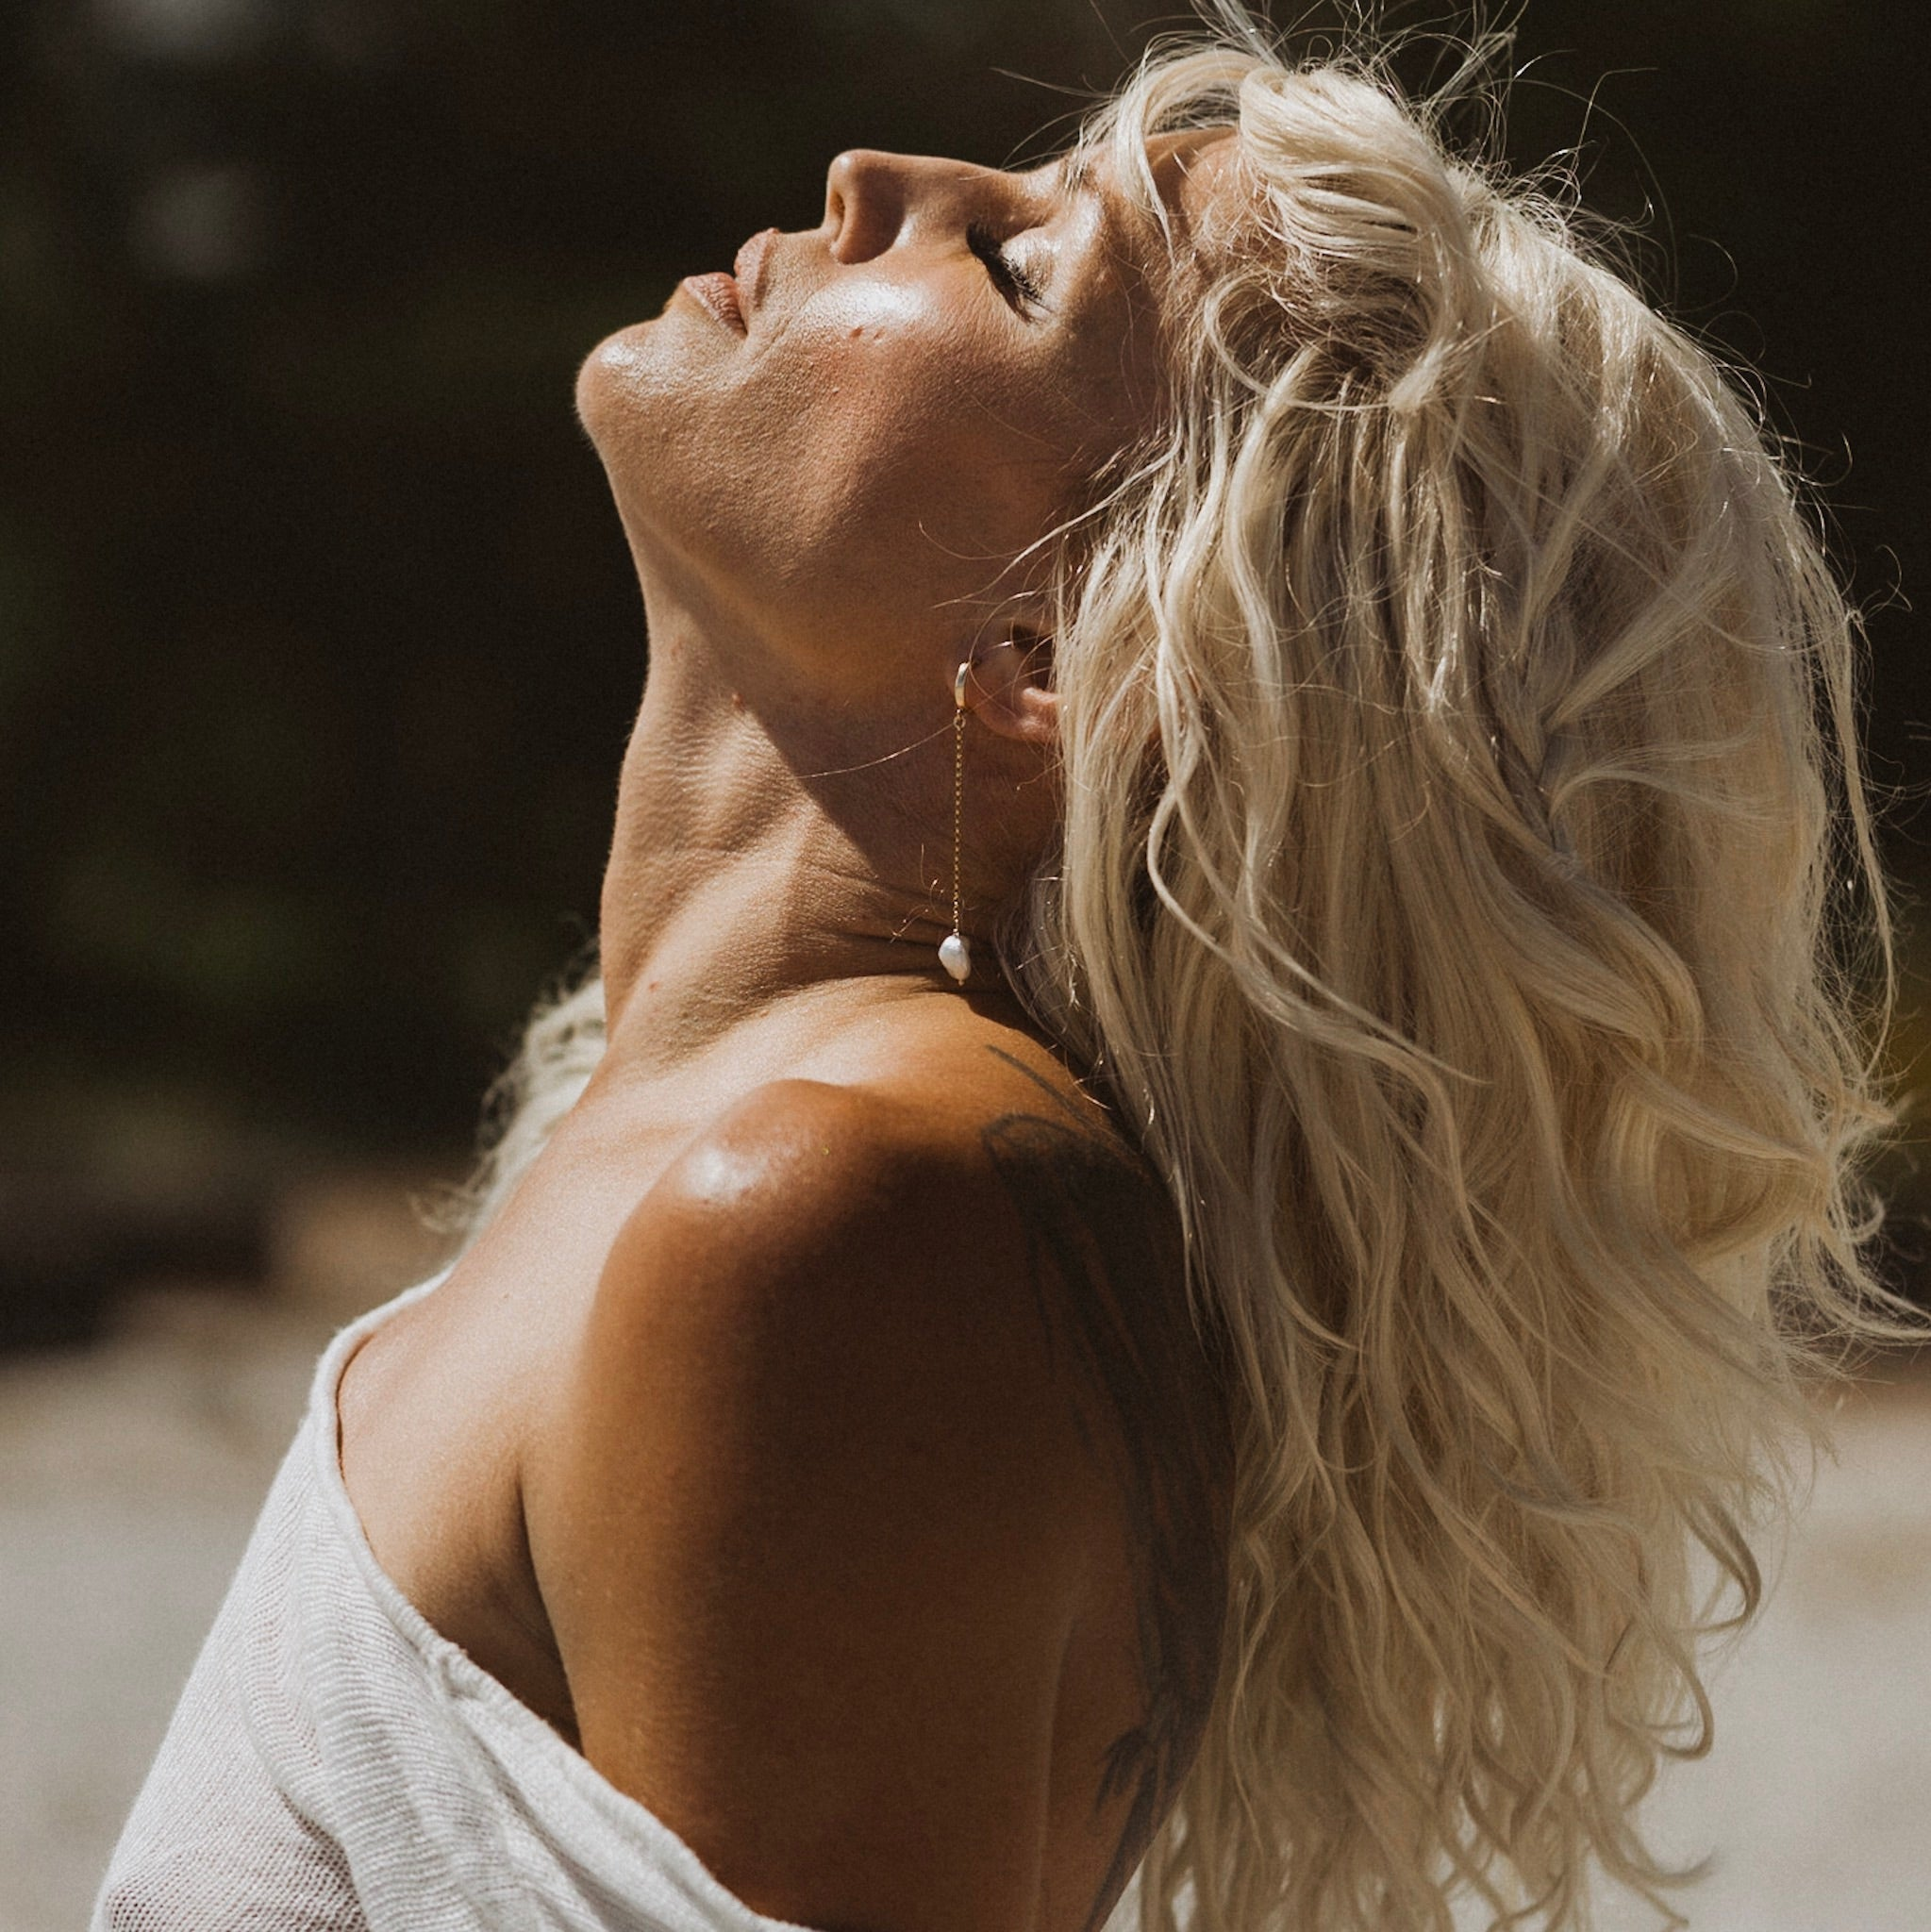 a side profile shot of a blonde woman with a large back tattoo, wearing a white top and dangly gold drop pearl naiad earrings looking to the sky with sun on her face